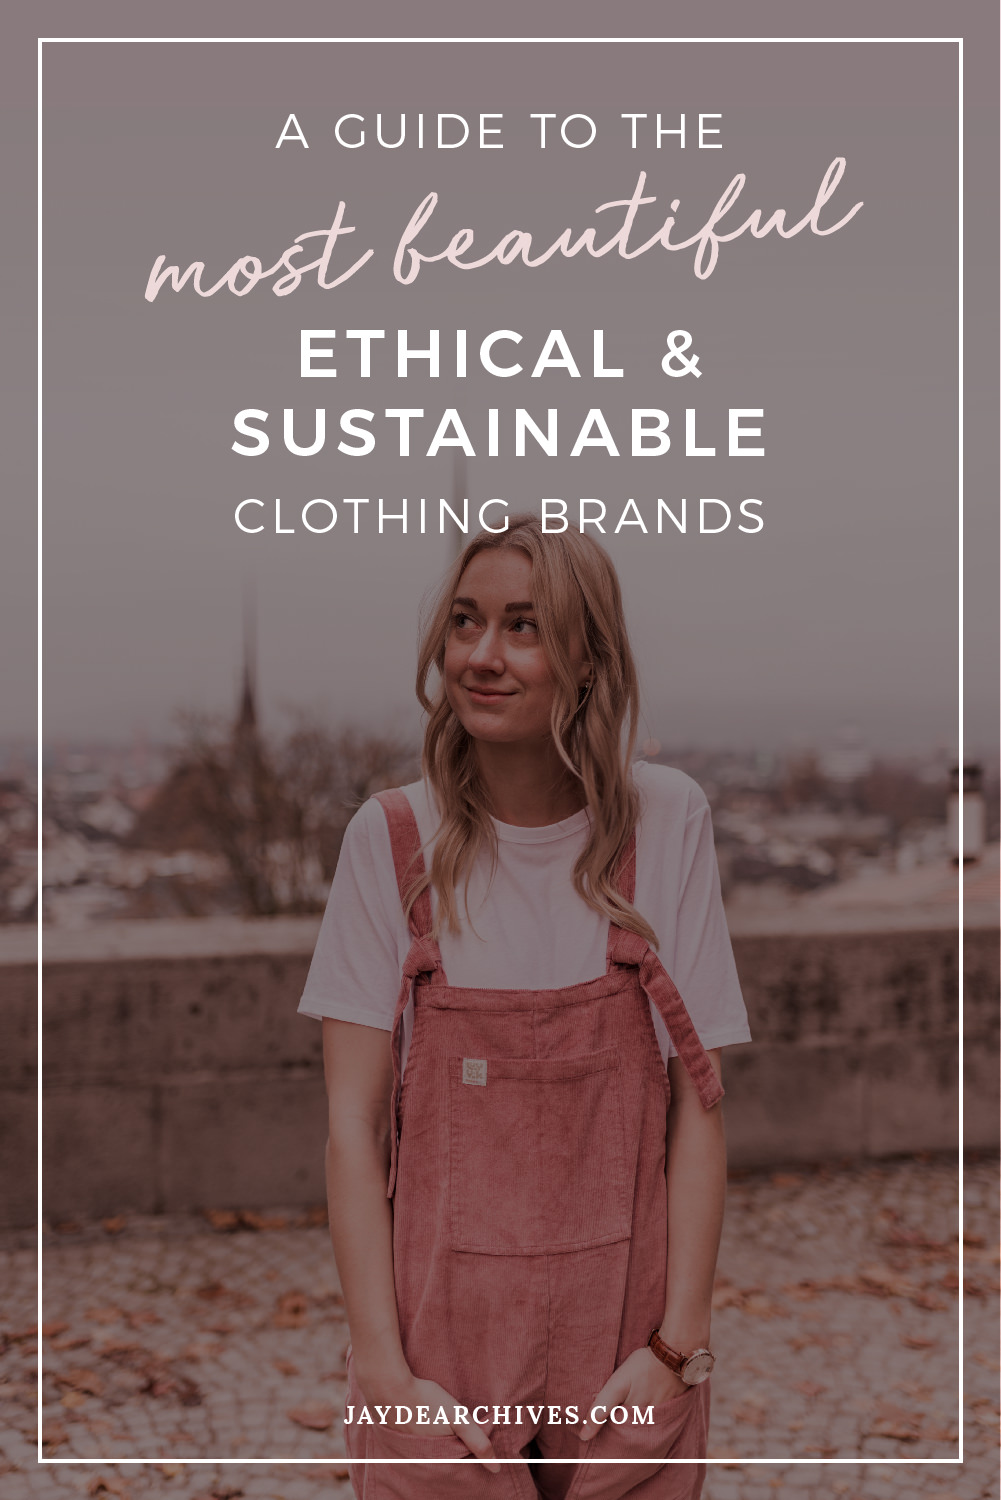 A guide to the most beautiful ethical and sustainable clothing brands #ethical #sustainable #slowfashion